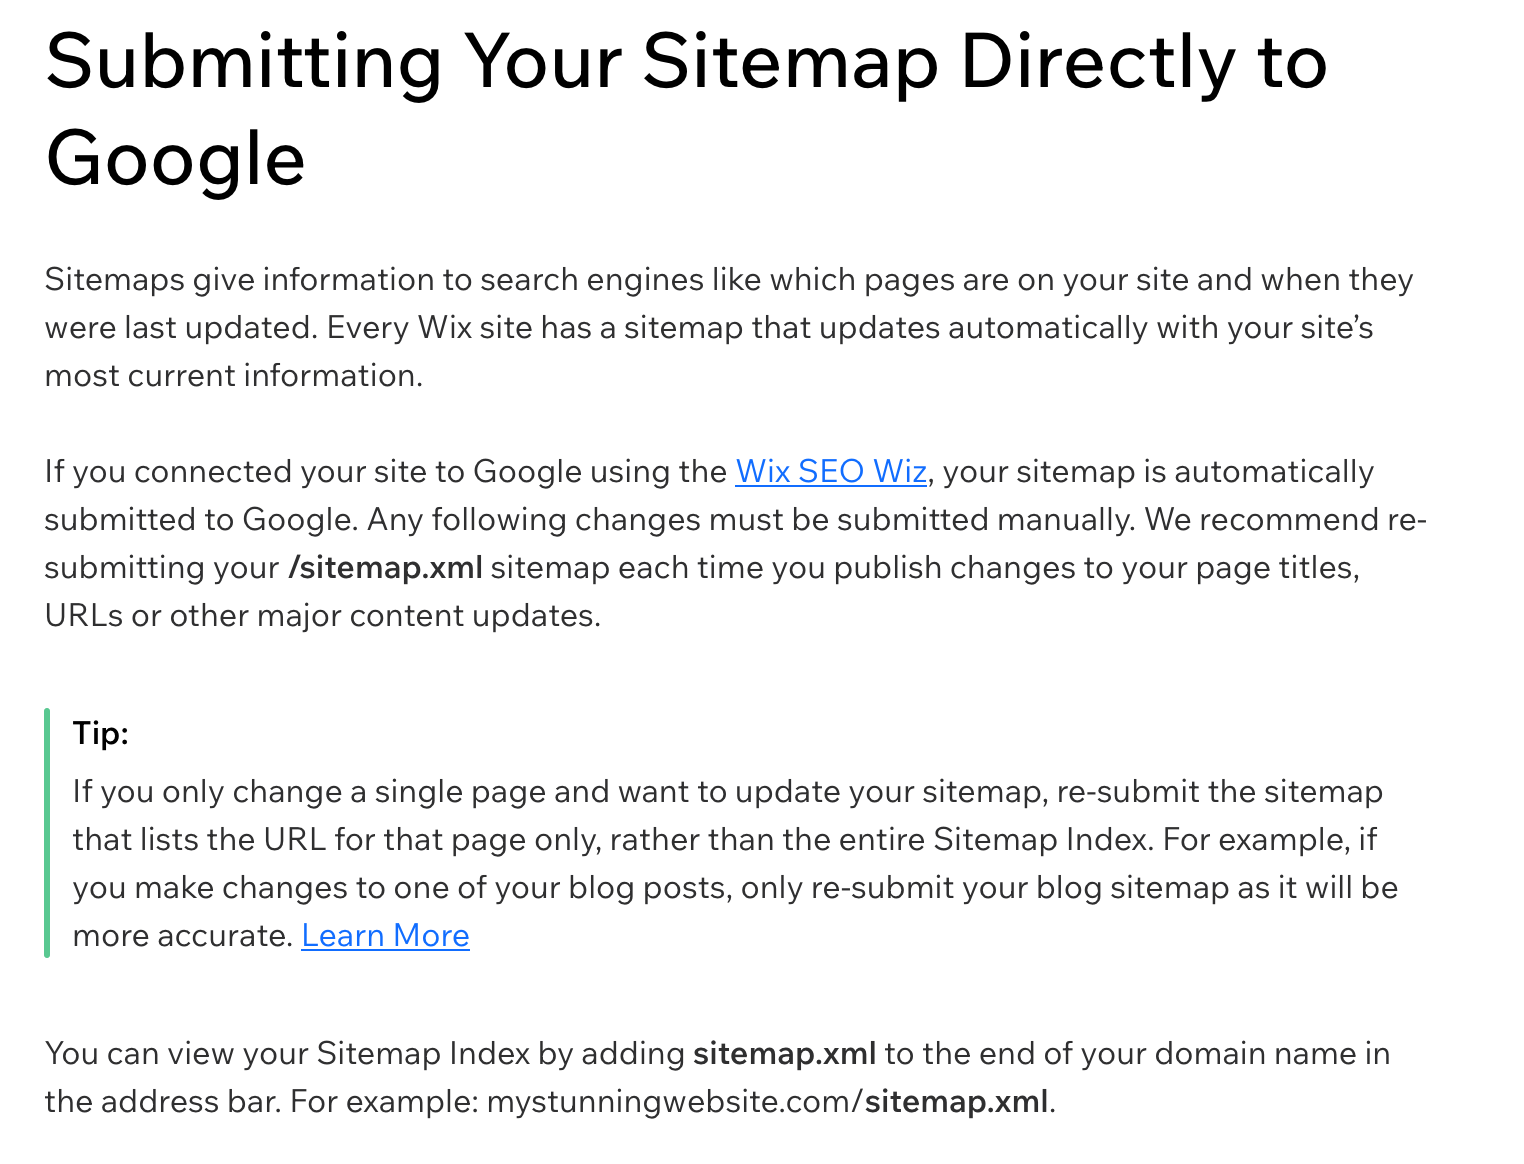 wix-submit-sitemap-guide.png